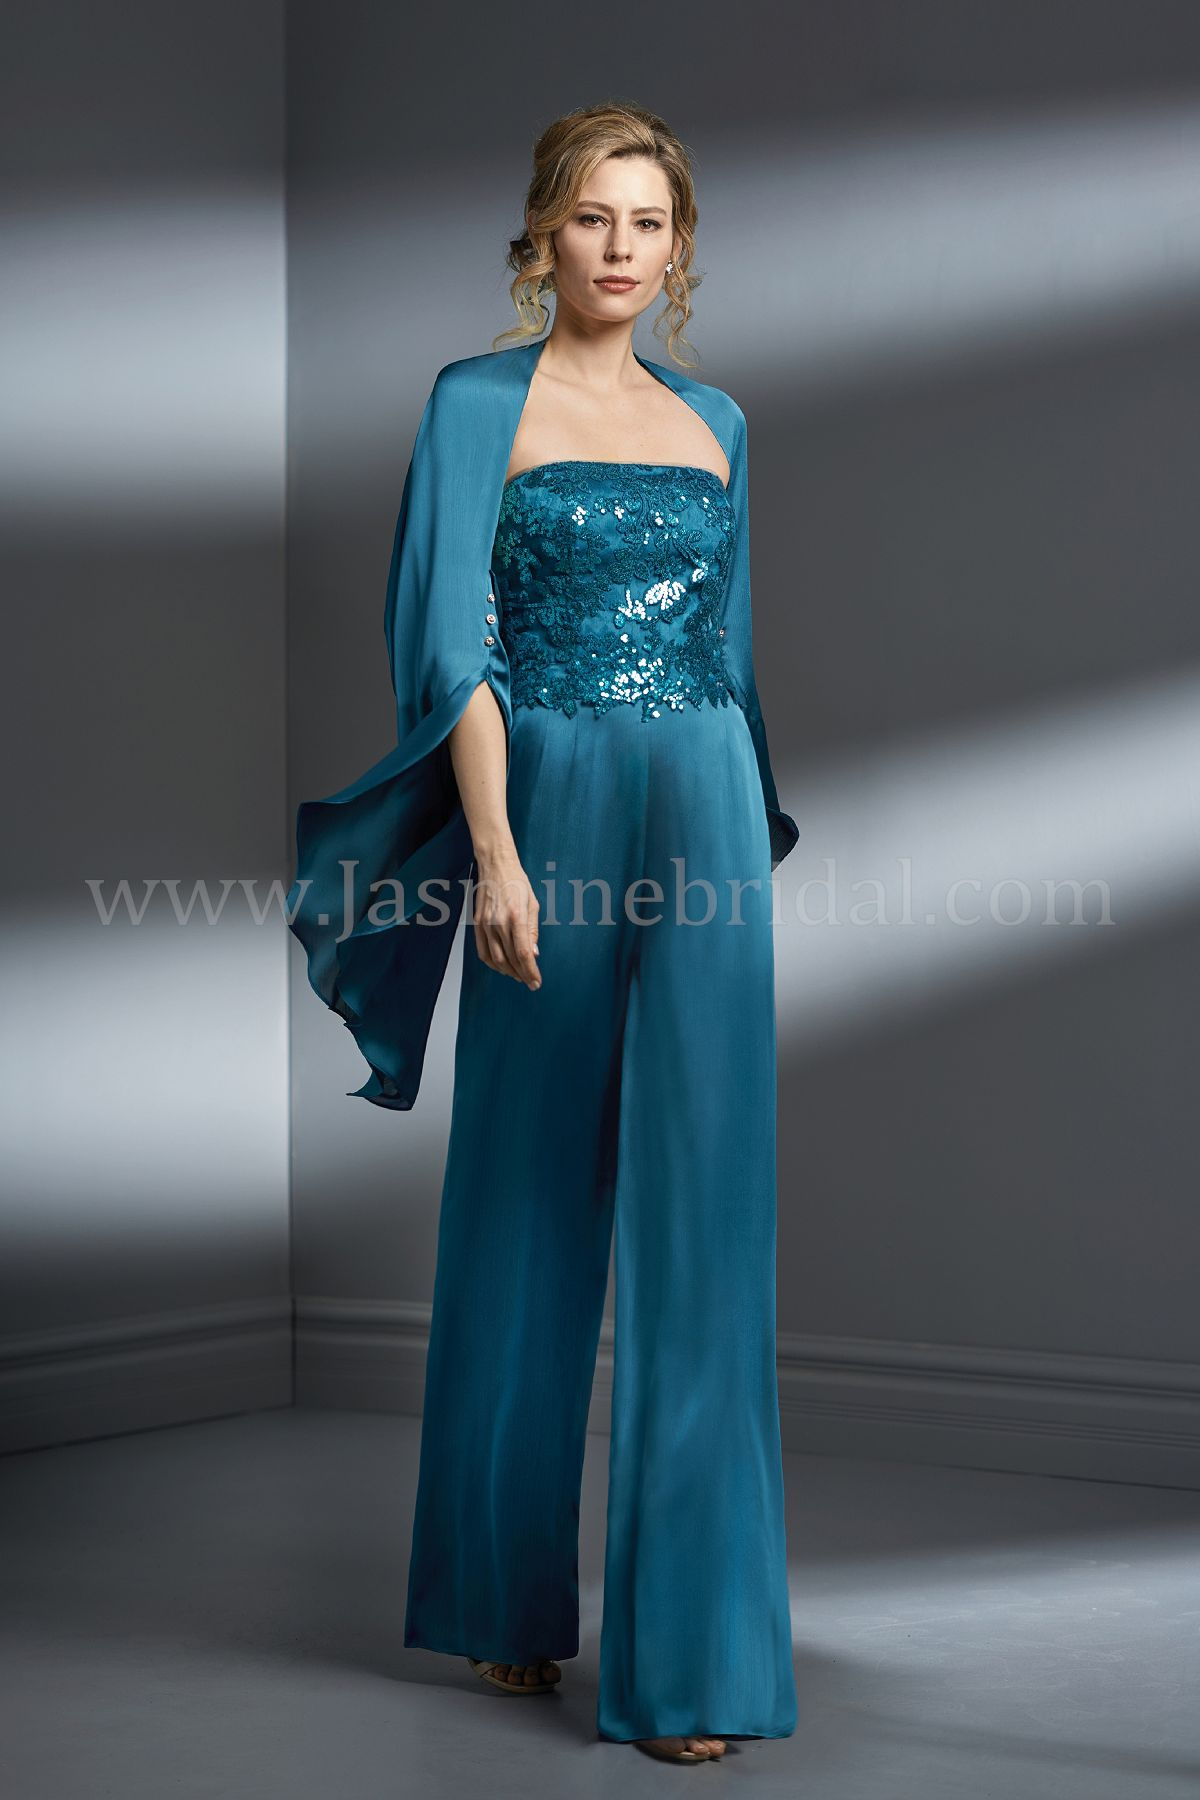 K198067 Strapless Sequin Lace Amp Satin Face Chiffon Mob